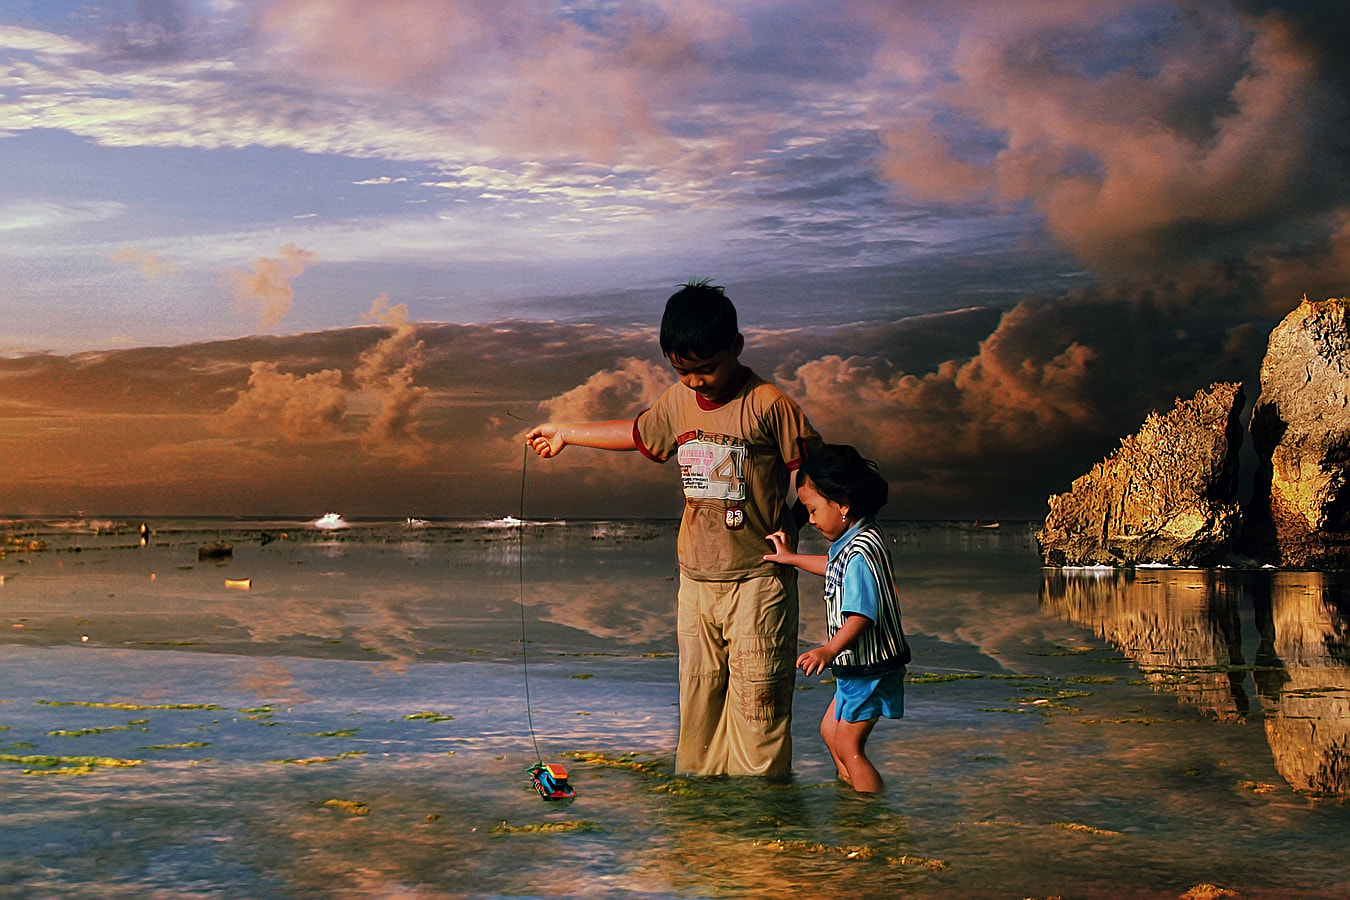 Photograph playing toy boat by 3 Joko on 500px